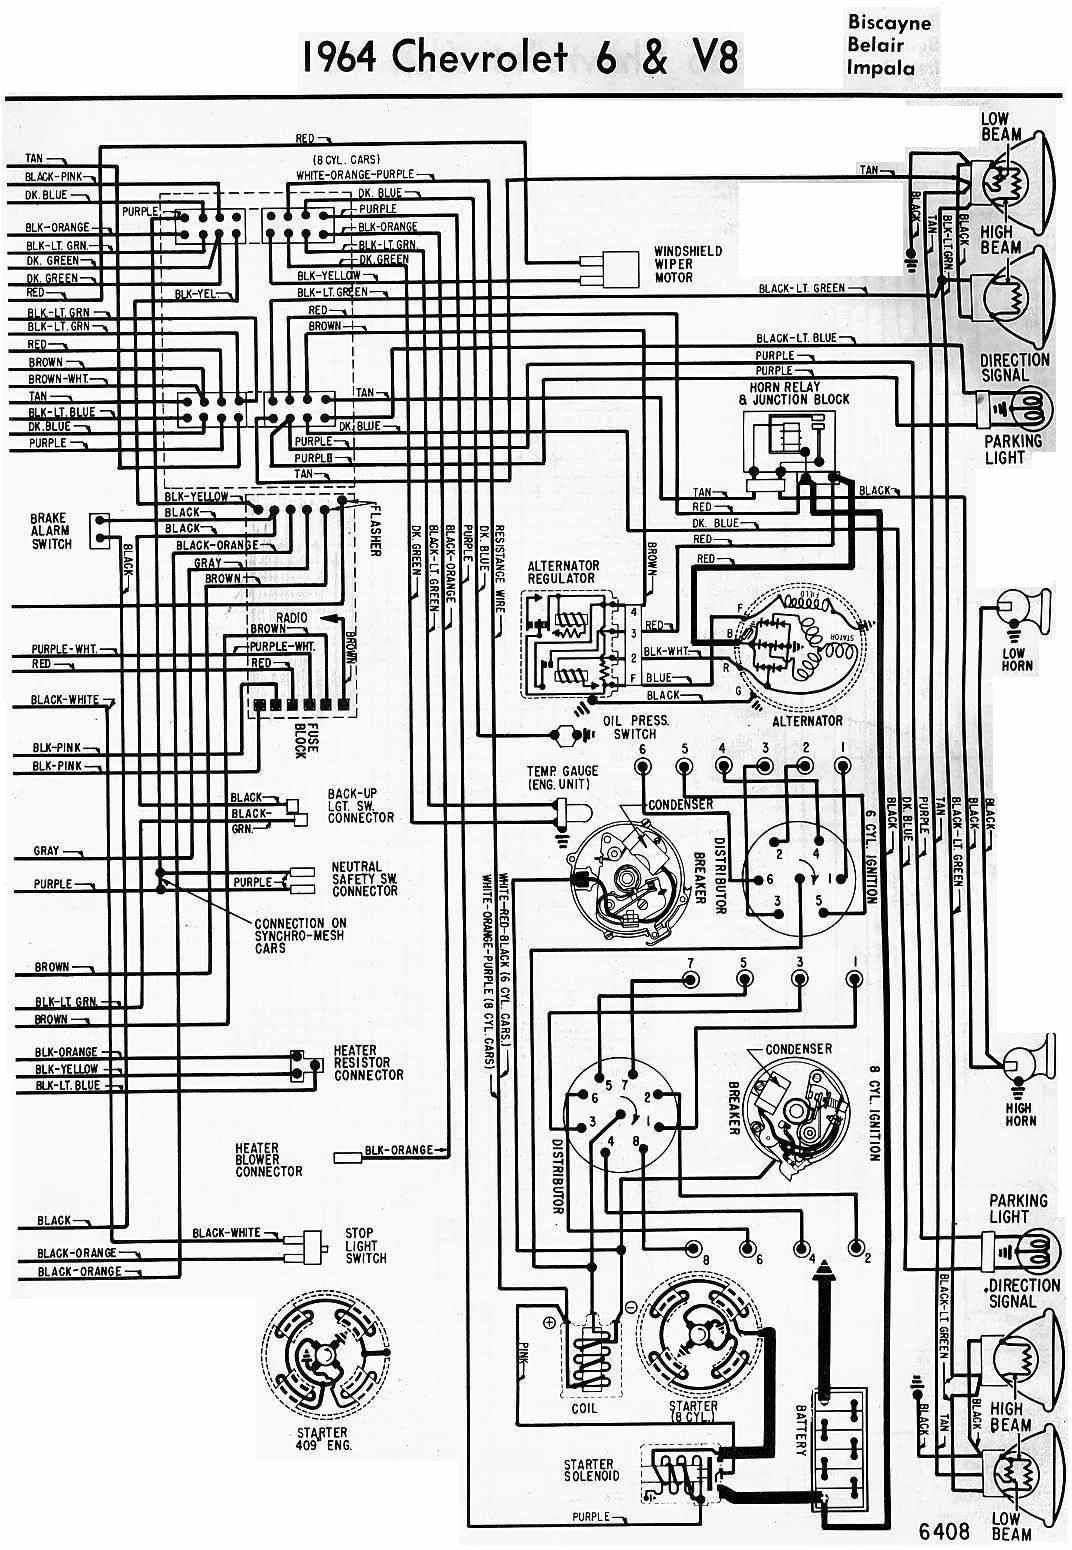 medium resolution of 1963 impala engine wiring diagram free download wiring diagram today 1963 impala engine wiring diagram free